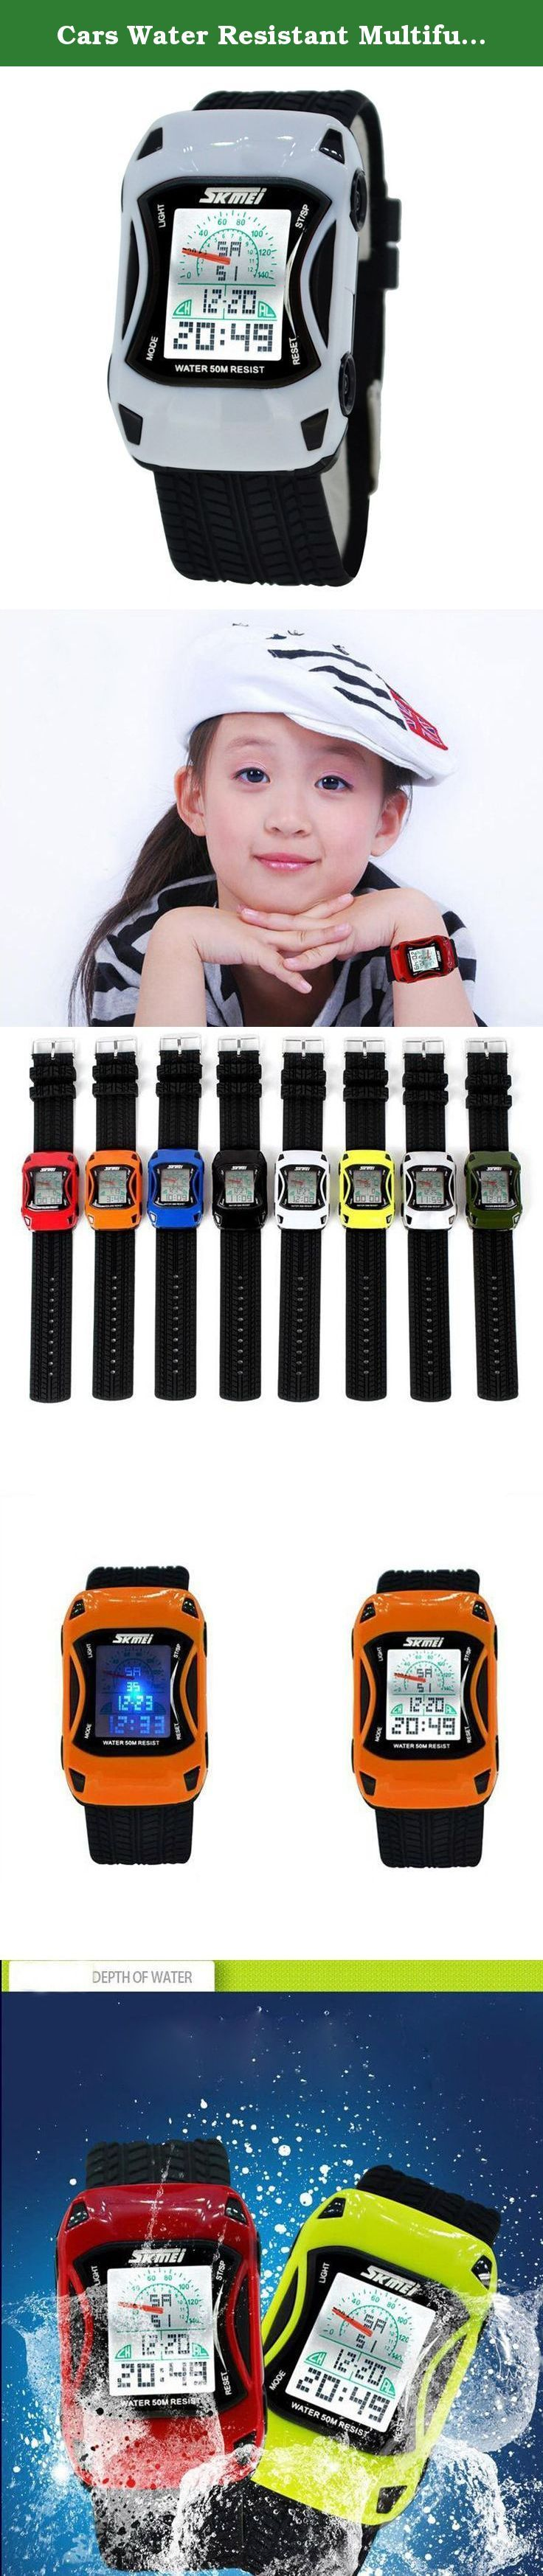 Cars Water Resistant Multifunction Climbing Dive LCD Digital Watches Child's Wristwatch- White. A variety of styles you can choose in our store ! Package Included: 1 x Watch Please Note: 1. Actual color may vary from picture due to computer settings. 2. Find store front of Sunny world, more surprises are waiting for you! Dear Buyer, Thanks for your continuous support to our store, and we are always striving to improve ourselves in terms of service, quality, sourcing, etc. It would be…